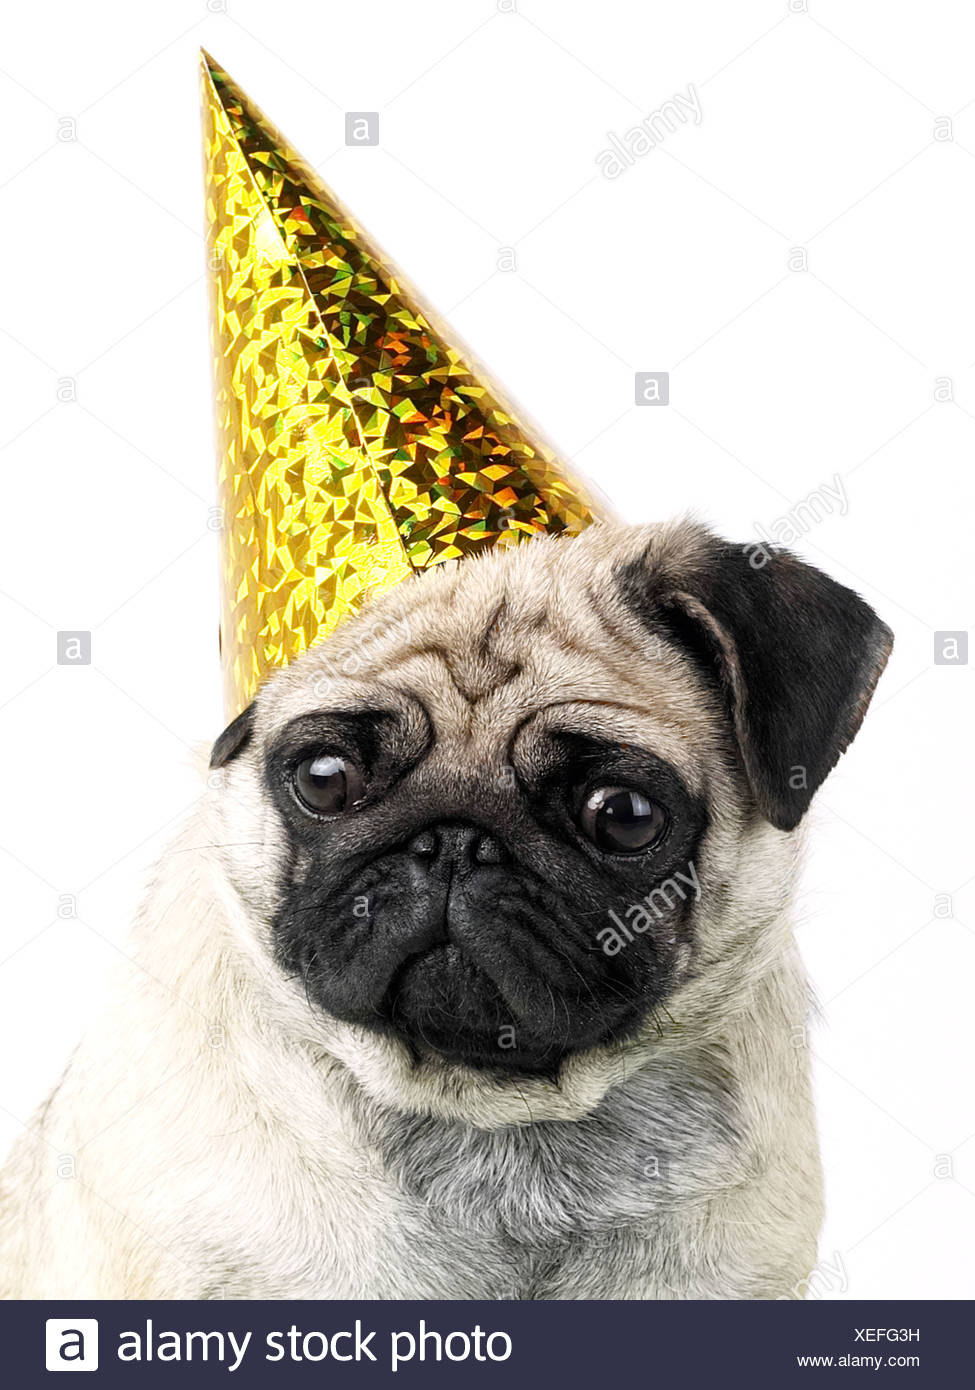 A pug wearing a party hat, being a party animal but looking unhappy. - Stock Image